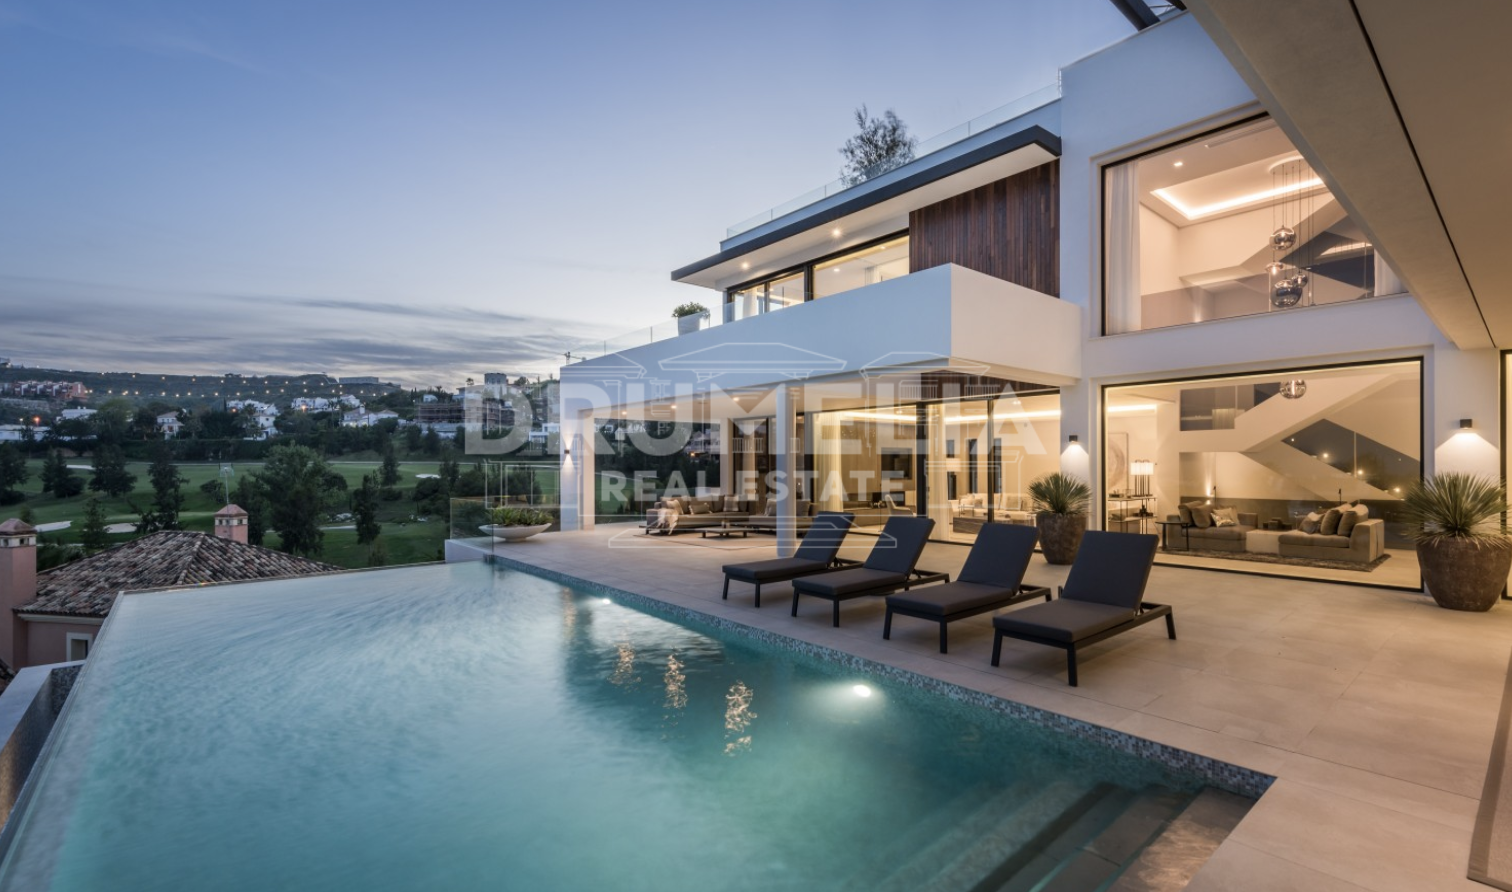 Benahavis, Captivating New Modern Luxury Villa, La Alqueria, Benahavis